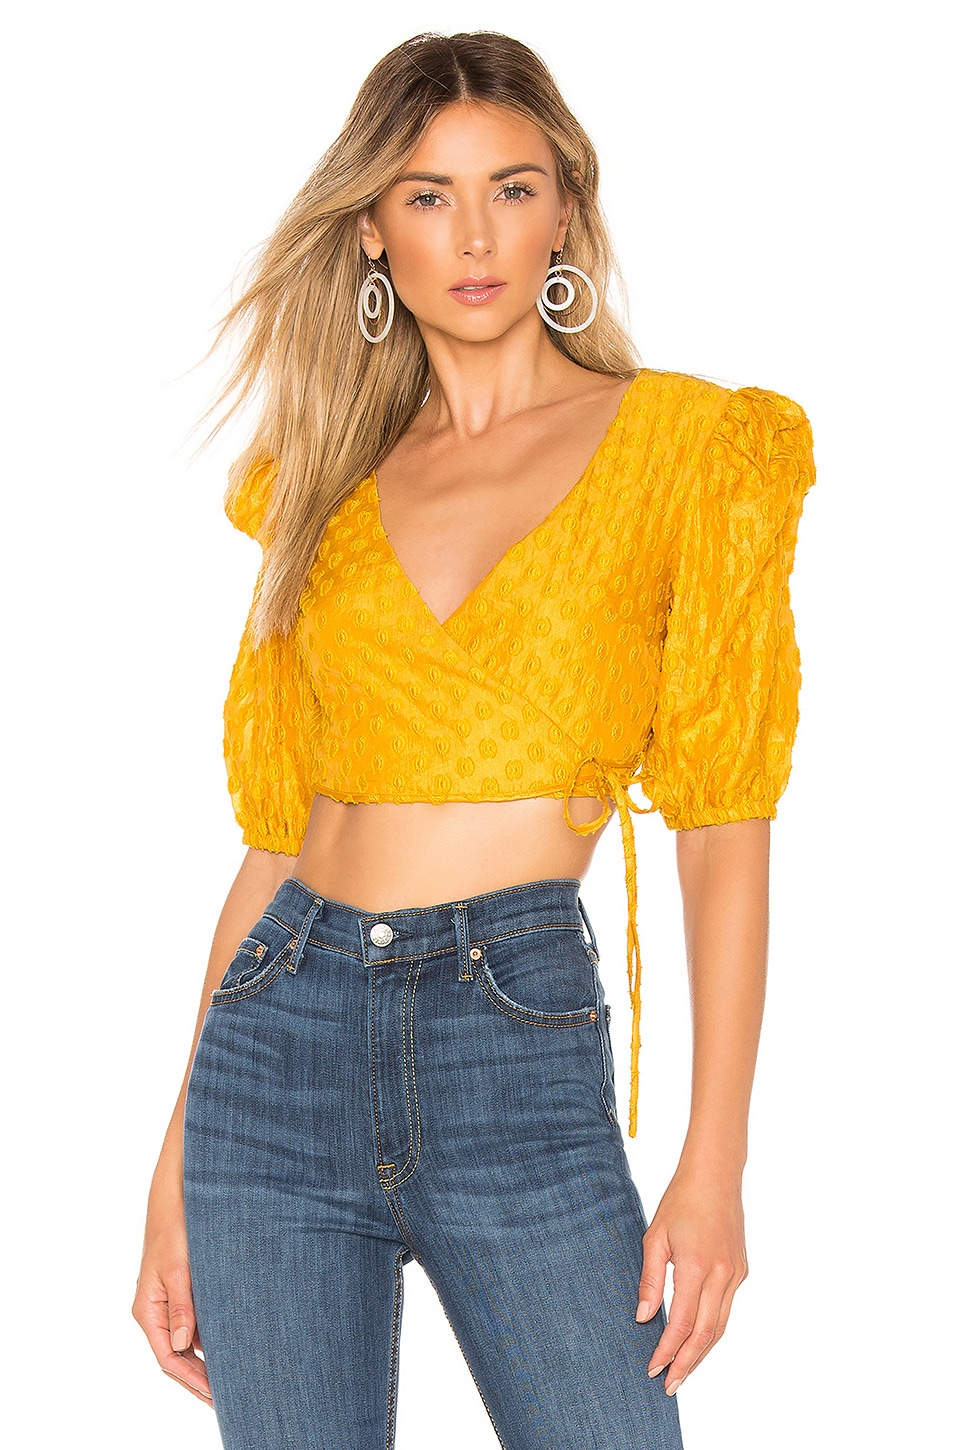 MAJORELLE Spencer Top in Mustard Yellow